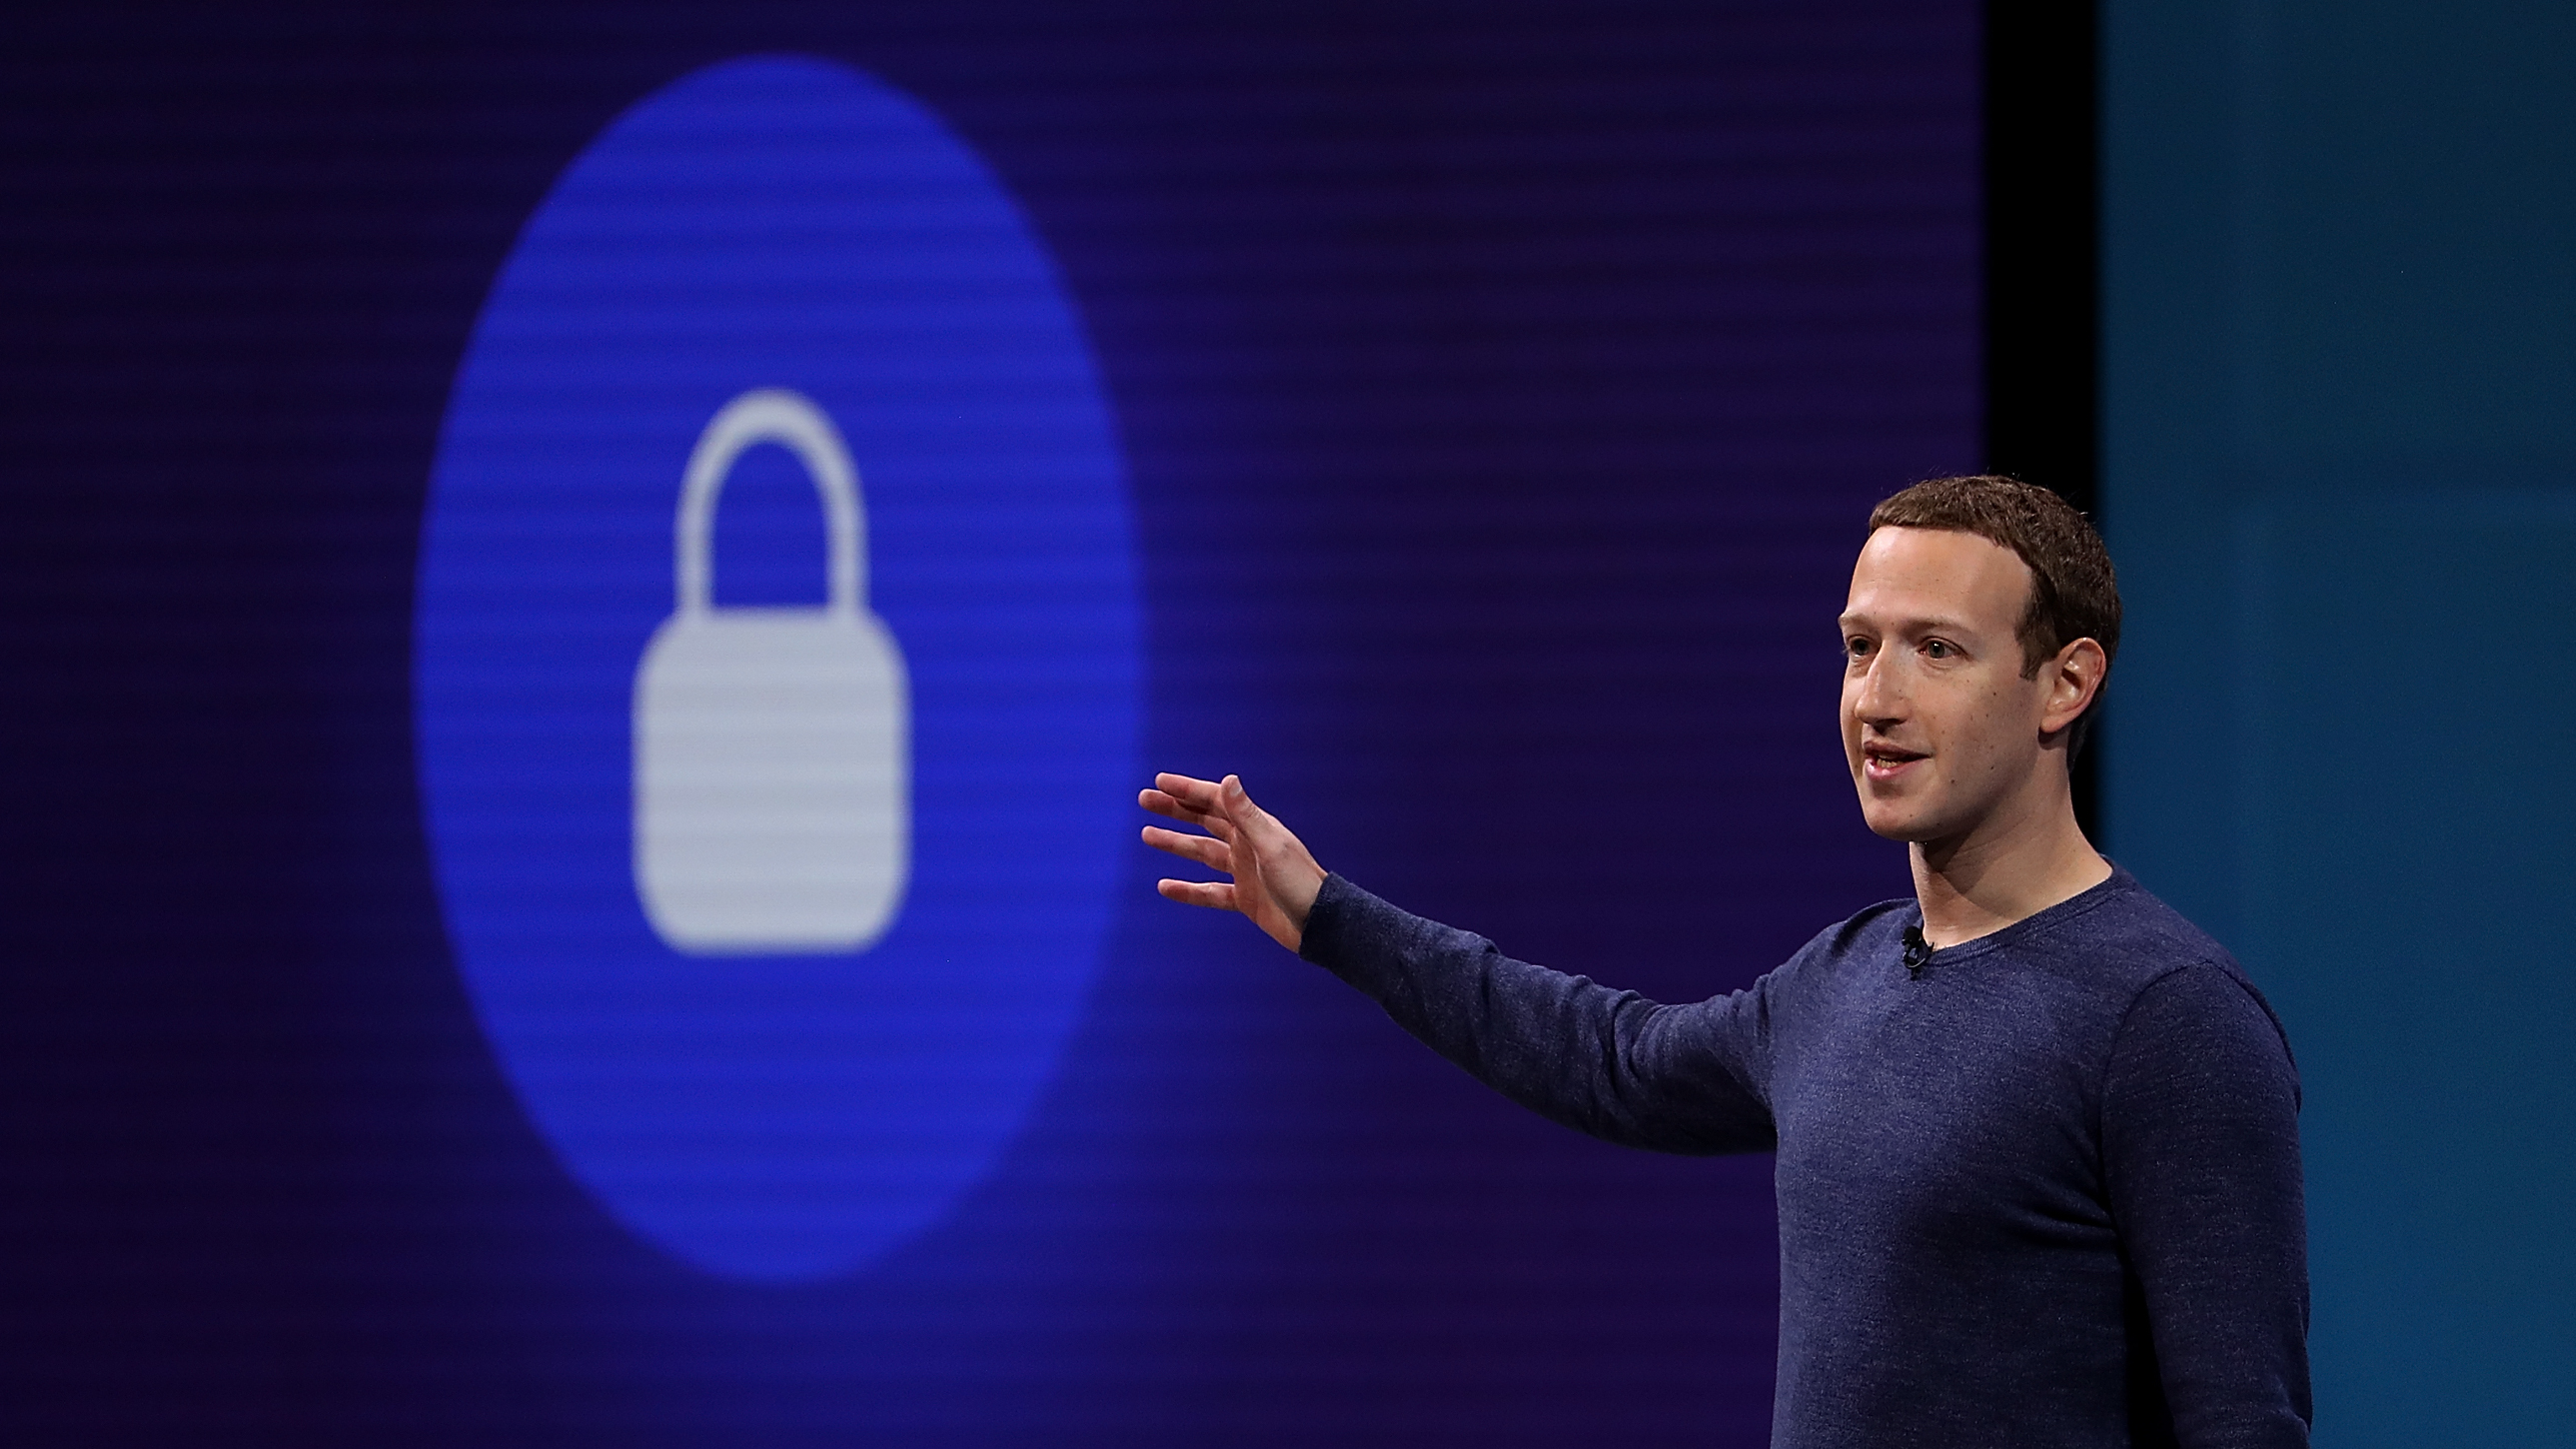 Facebook Could Face Up To $5 Billion Fine For Privacy Violations